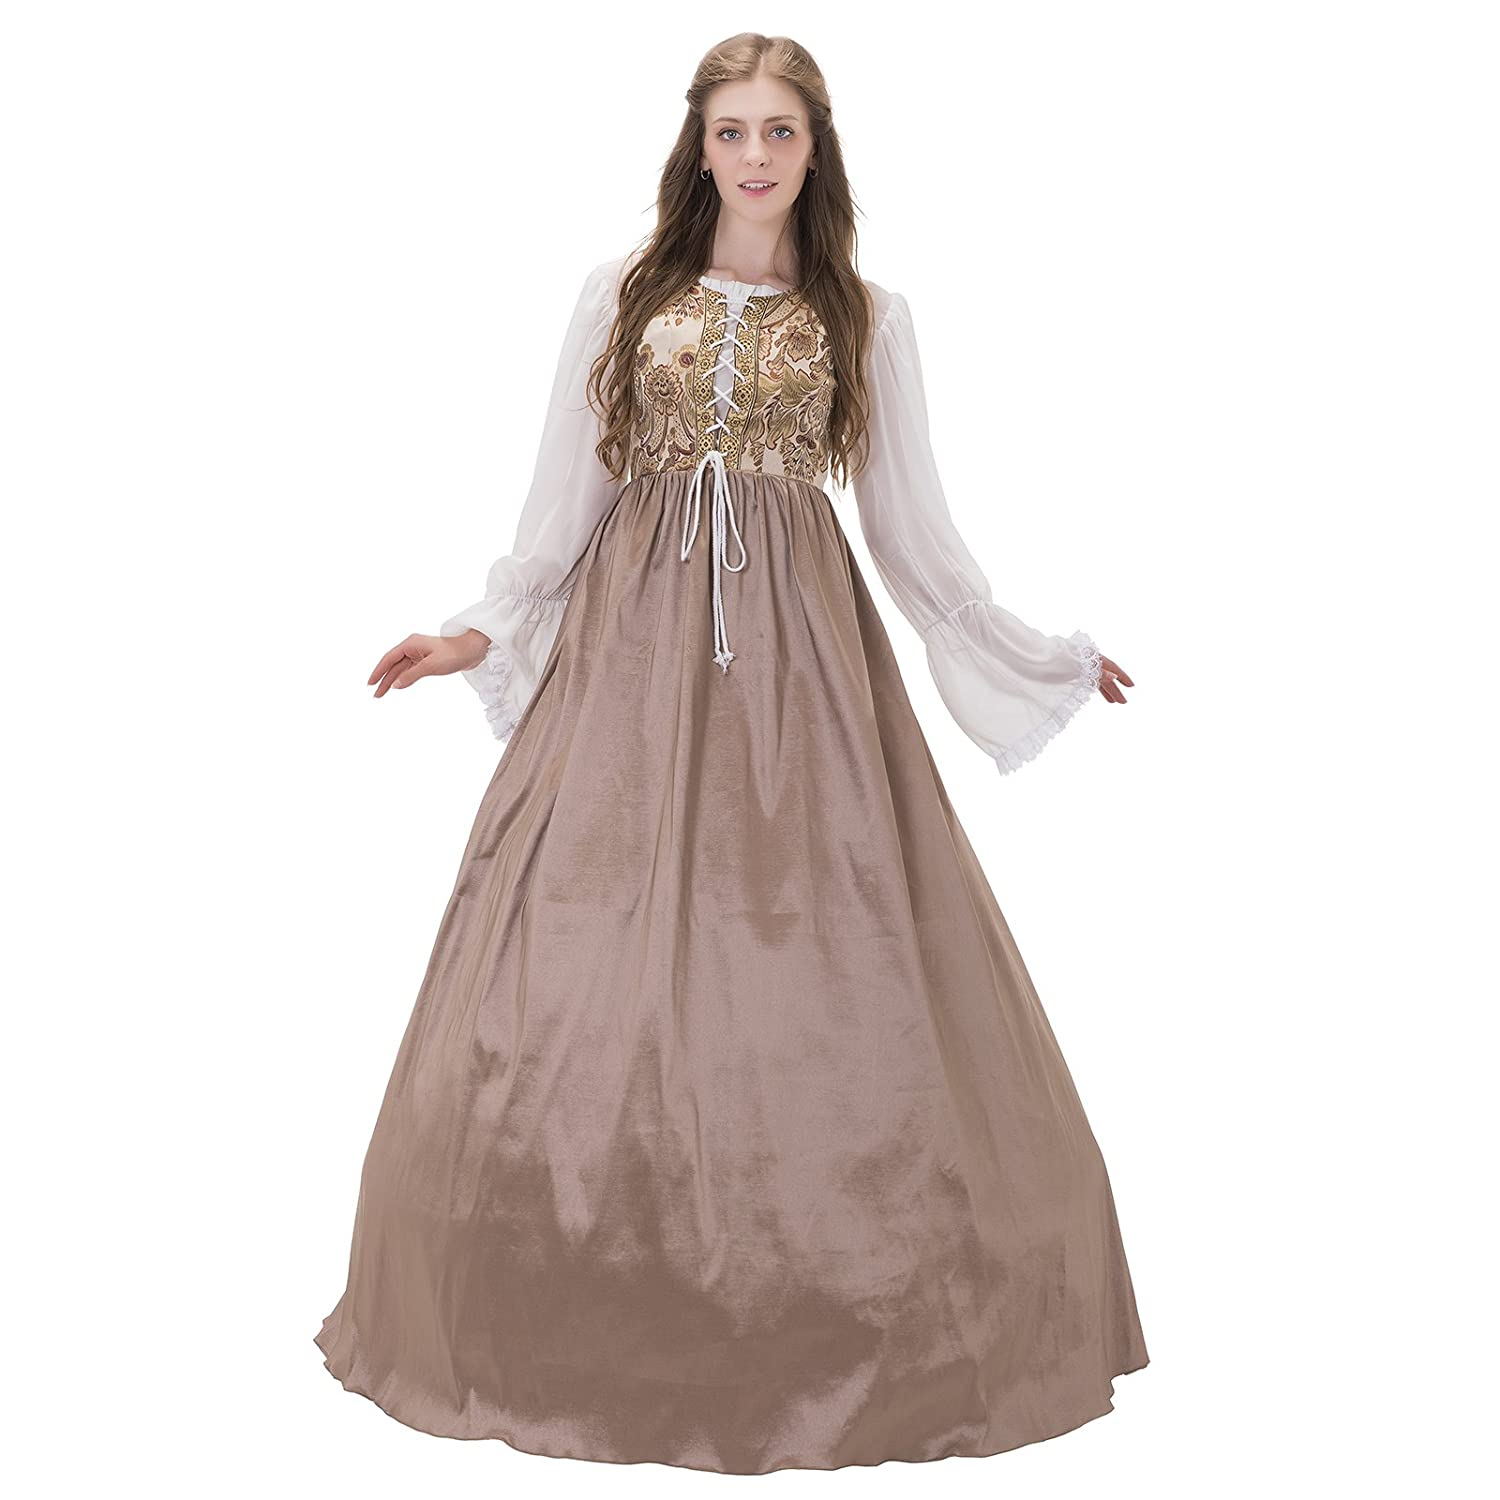 Women's Medieval Period Dress and Gown Costumes | Deluxe ...